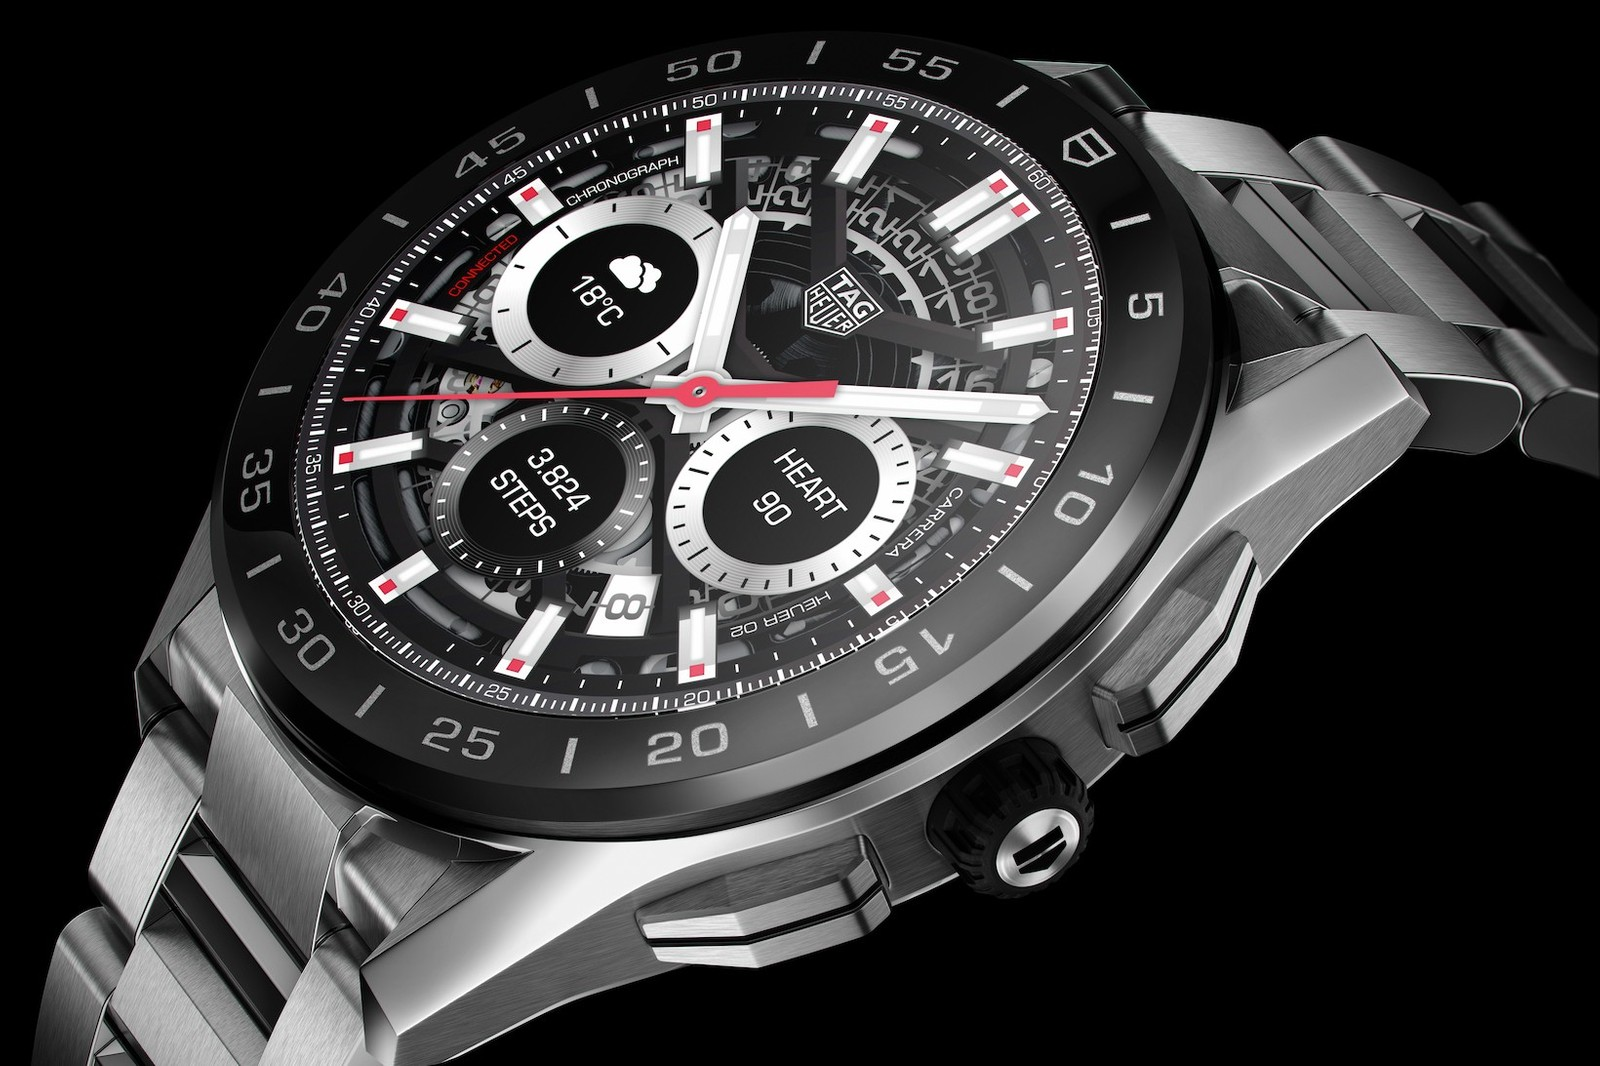 tag heuer new generation connected timepiece watch range sports performance technical physical digital sports